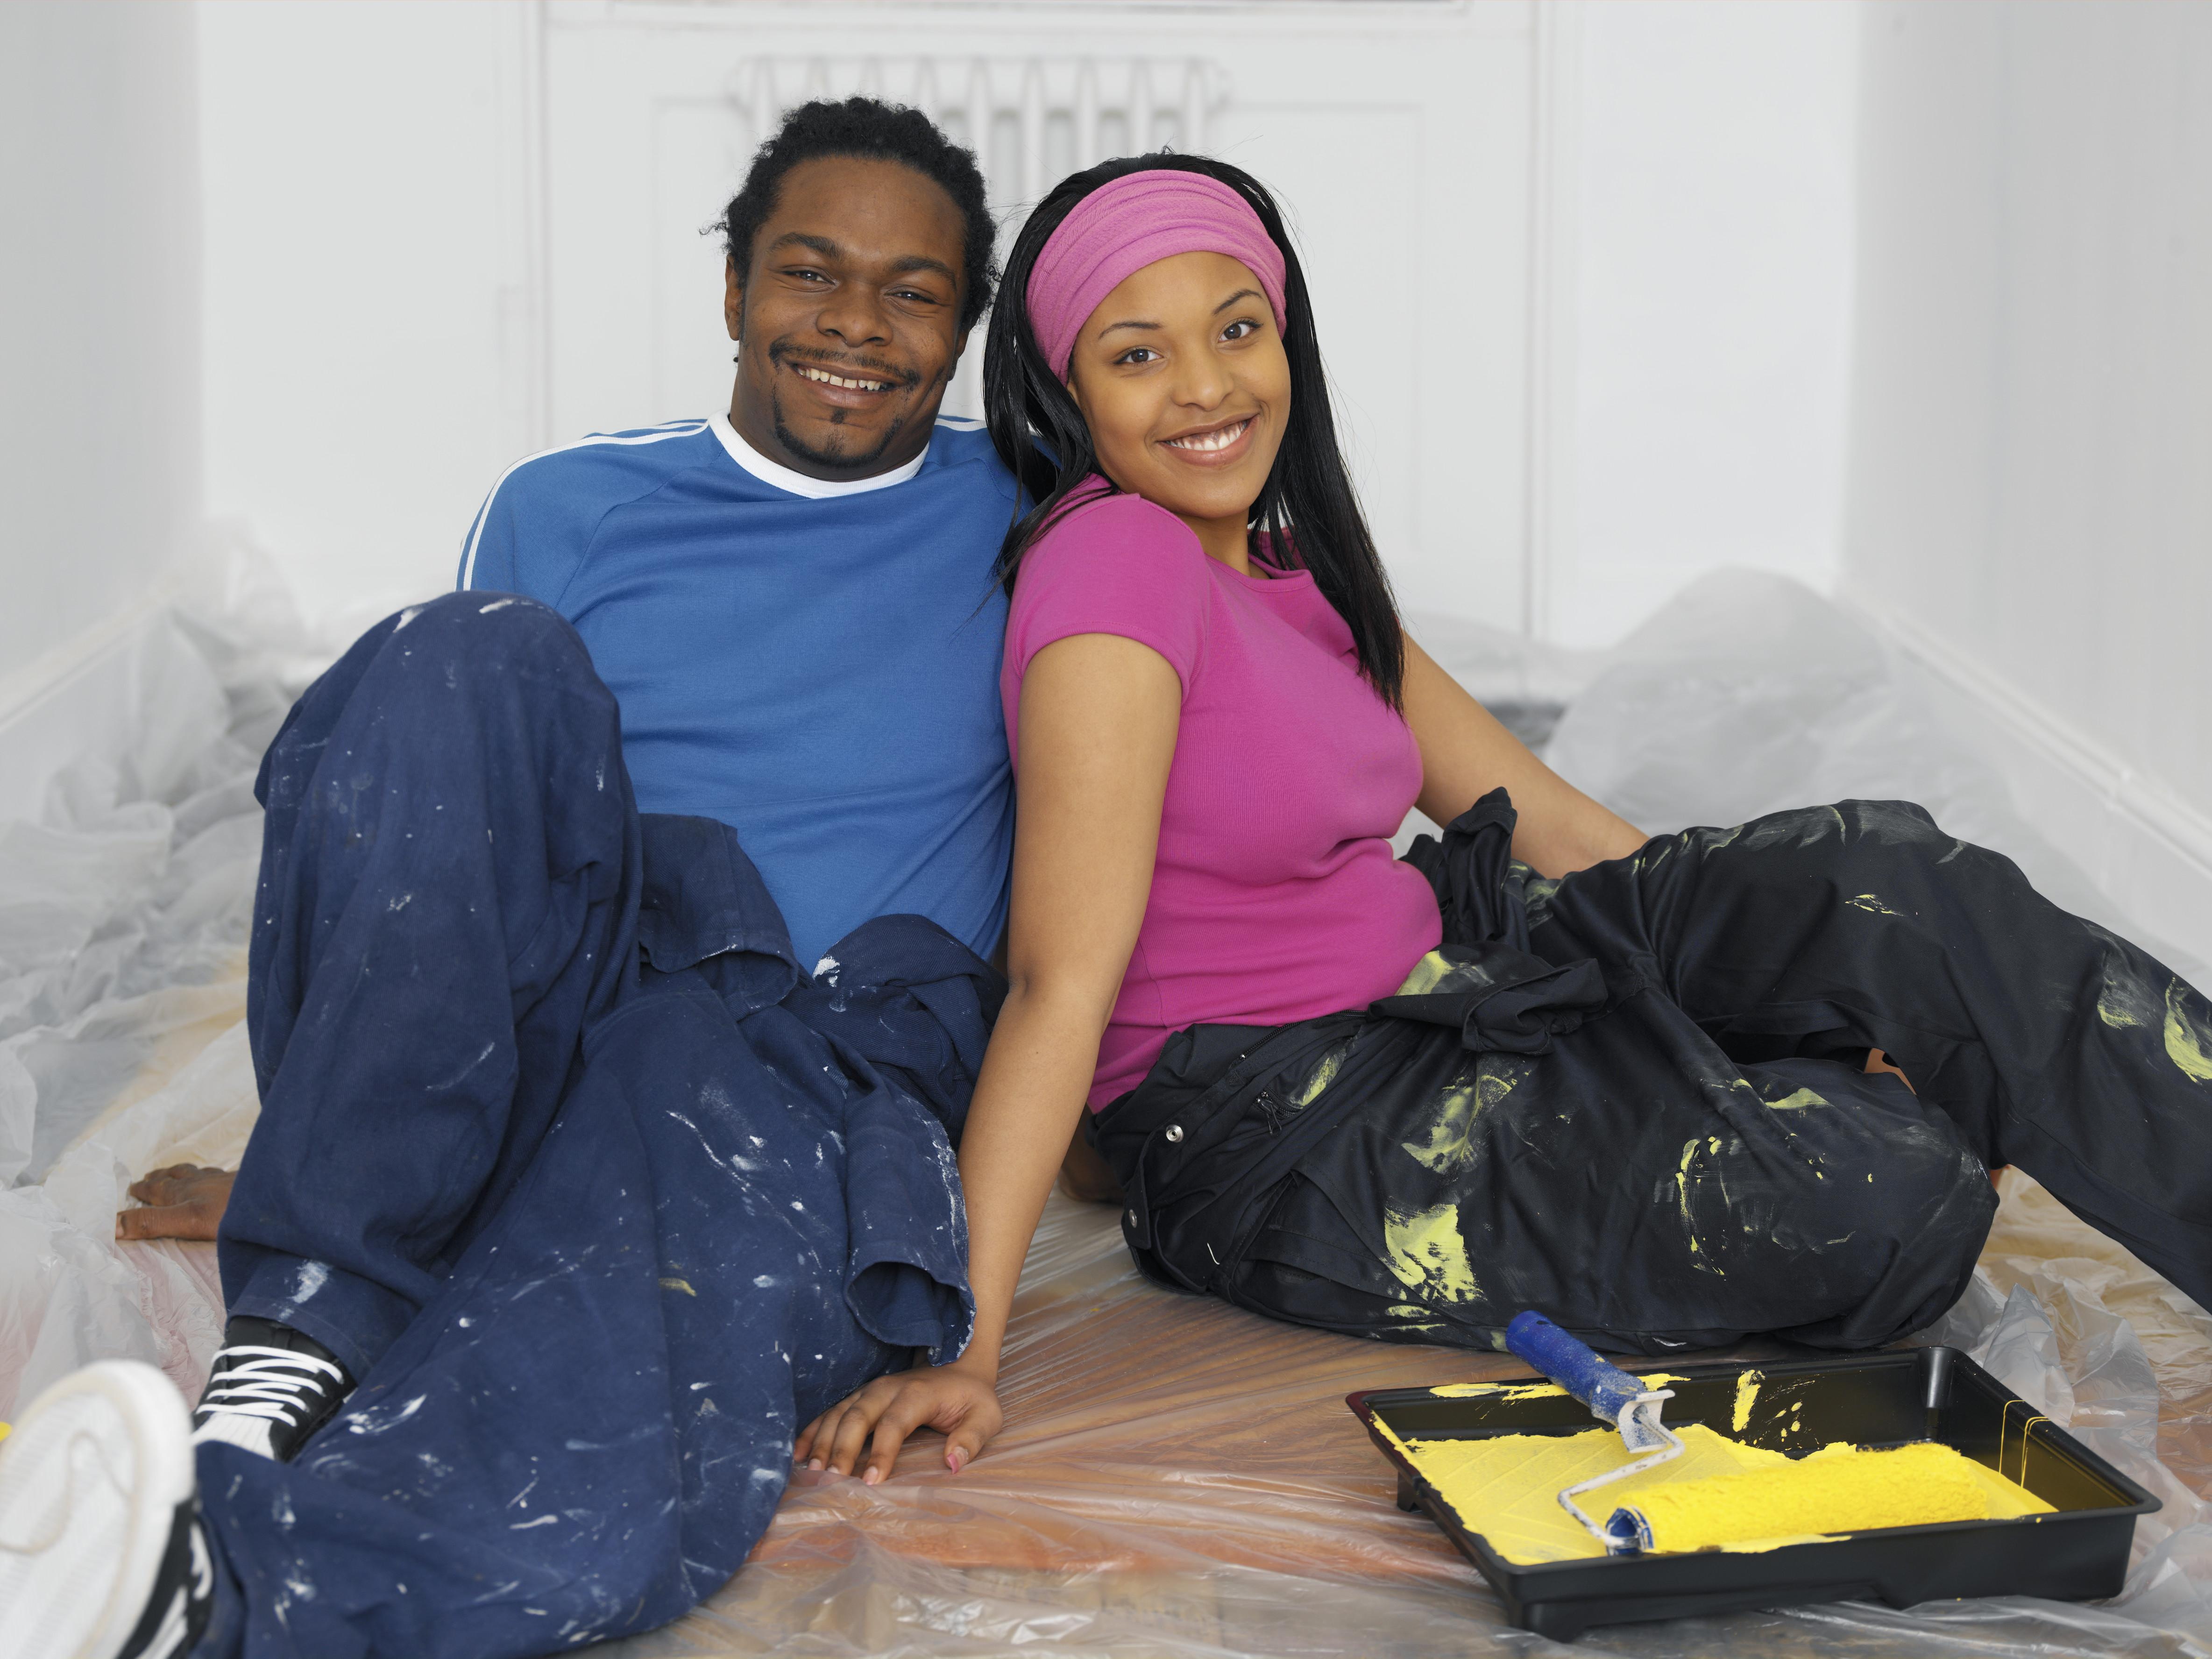 Young man and woman sitting on floor in decorating overalls, smiling